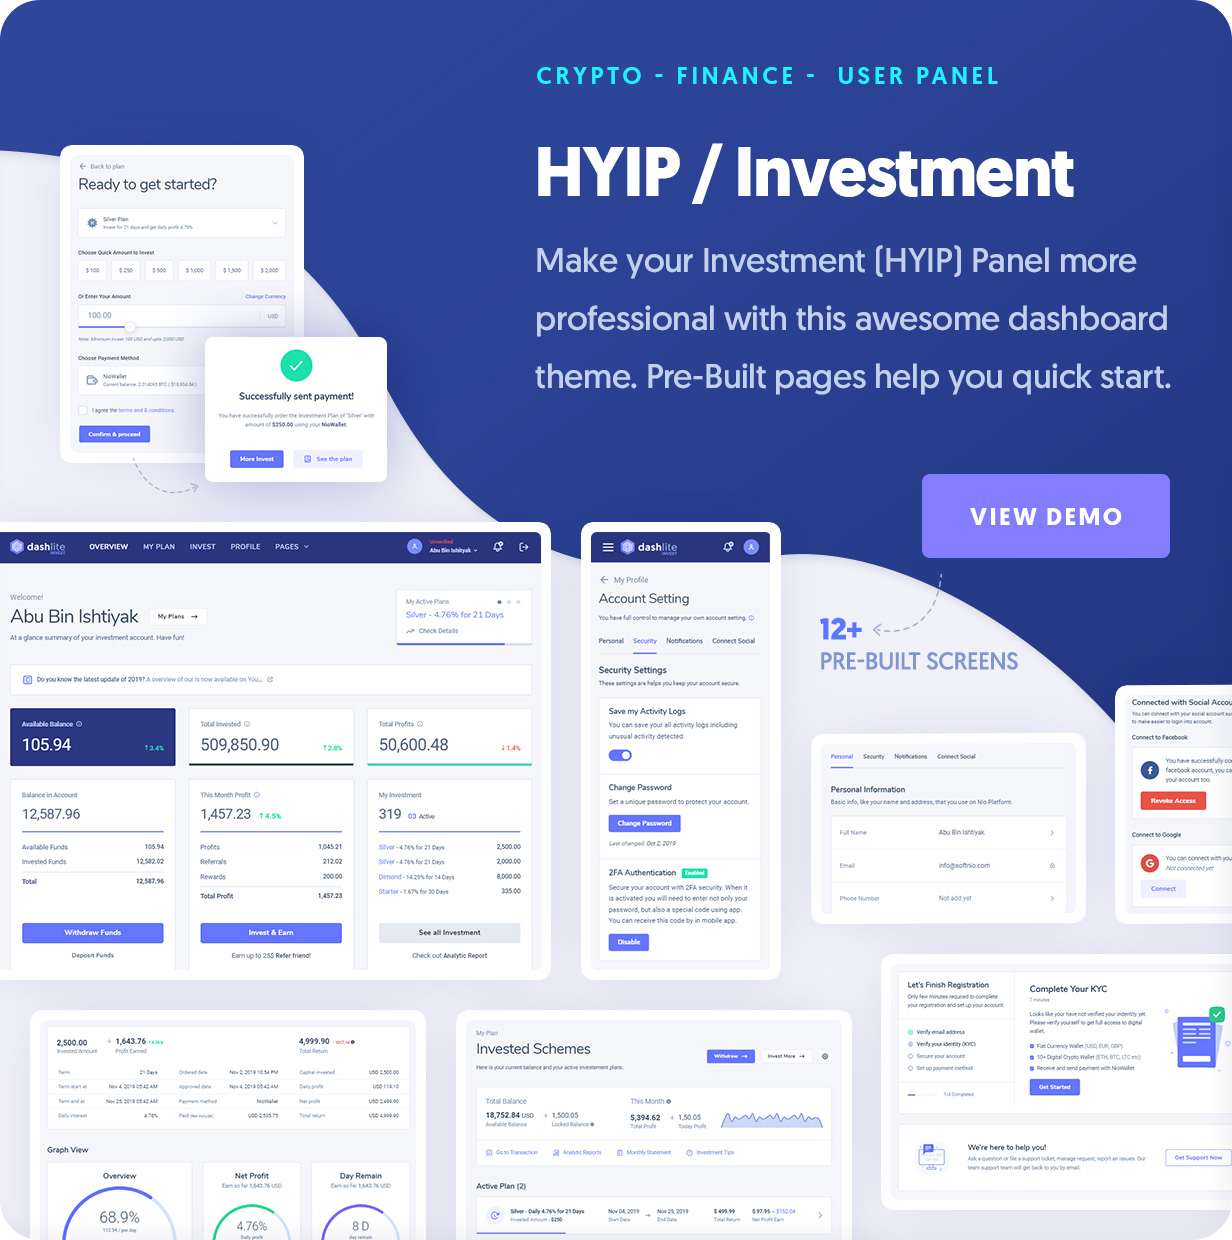 DashLite - Cyrpto Investment, HYIP Investment Dashboard Template